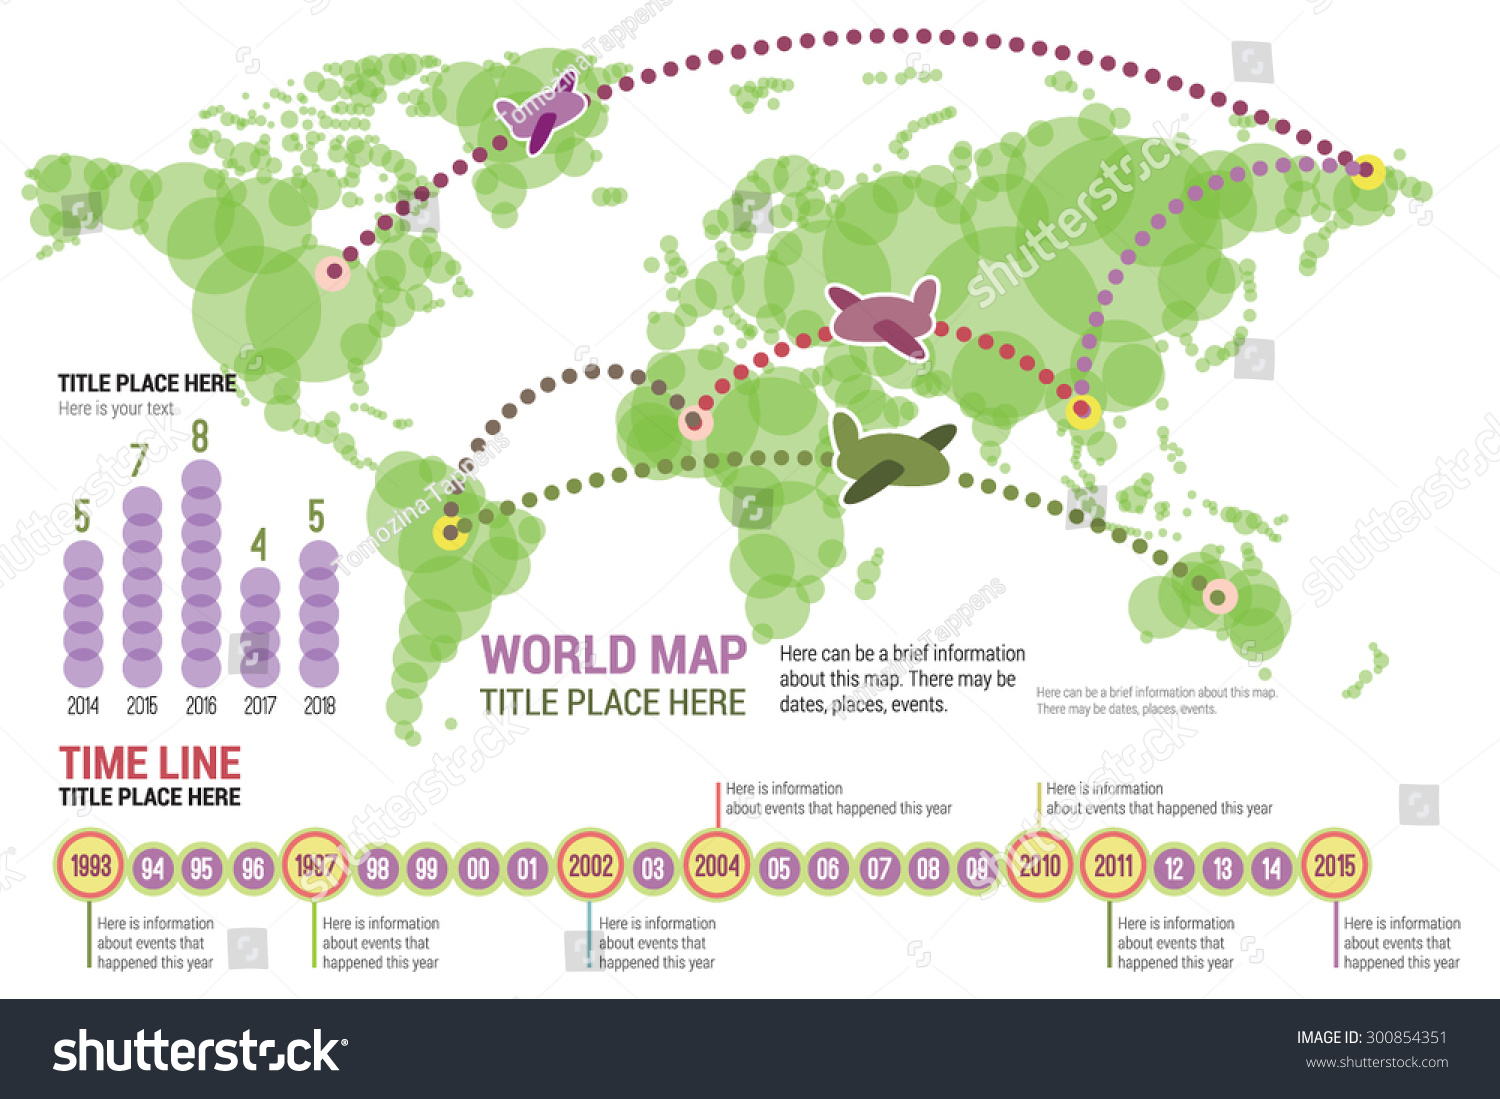 Vector world map green color infographic stock vector 300854351 vector world map in green color with infographic elements icons diagrams scale gumiabroncs Gallery